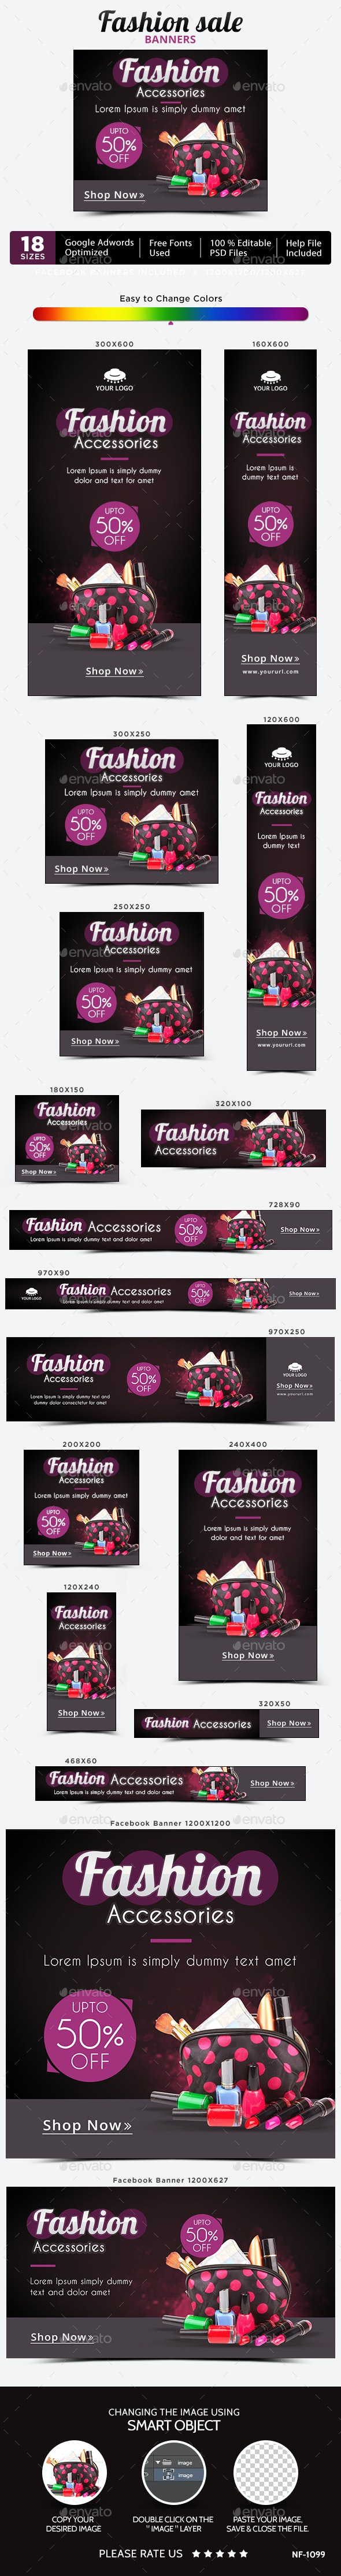 Fashion Accessories Banners - Banners & Ads Web Elements